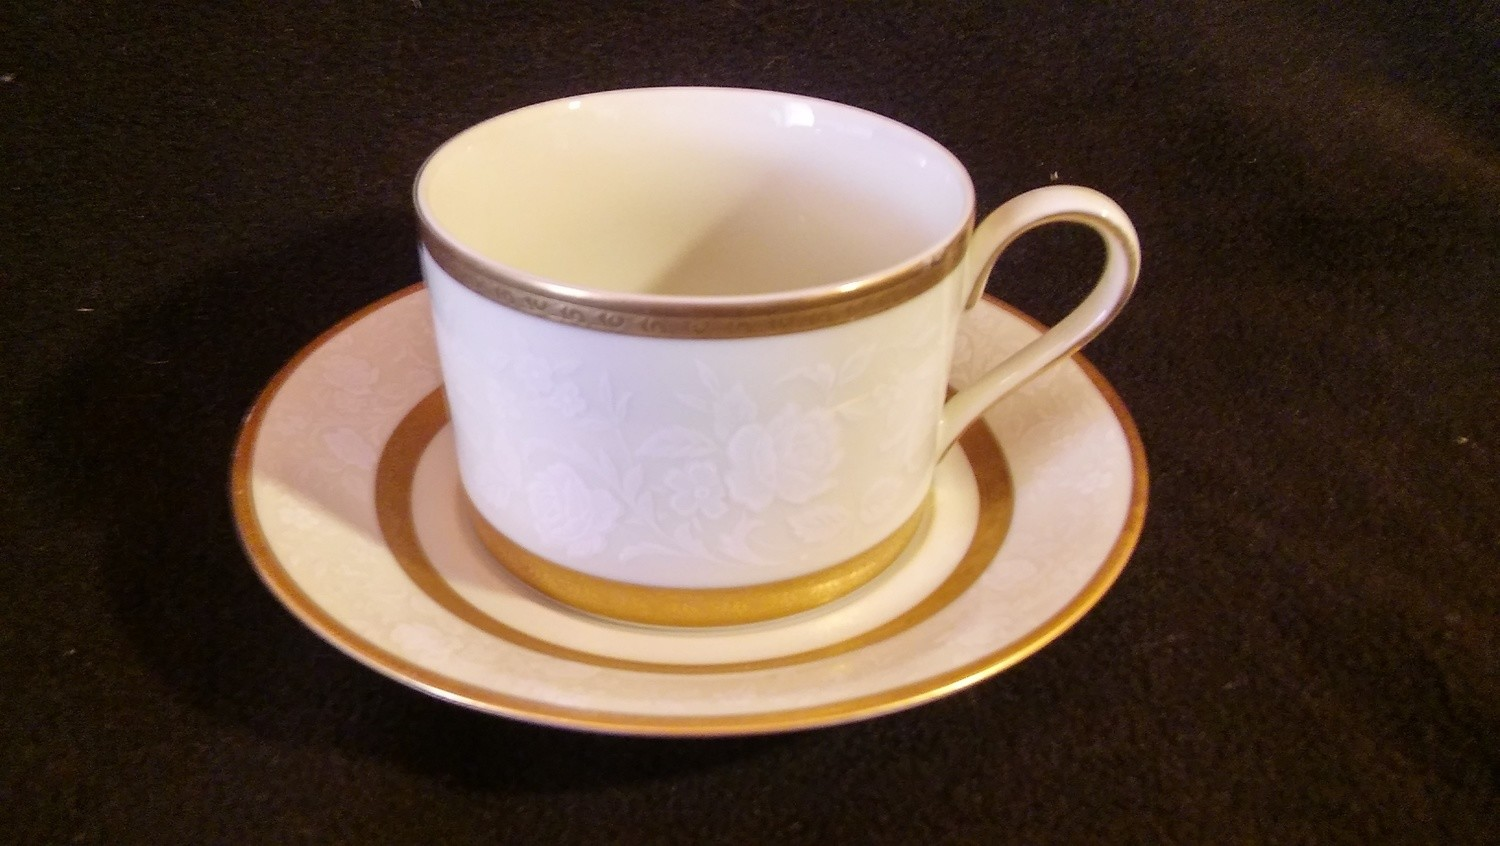 Mikasa Fine China, Flat Cup & Saucer, Antique Lace Pattern #L5531